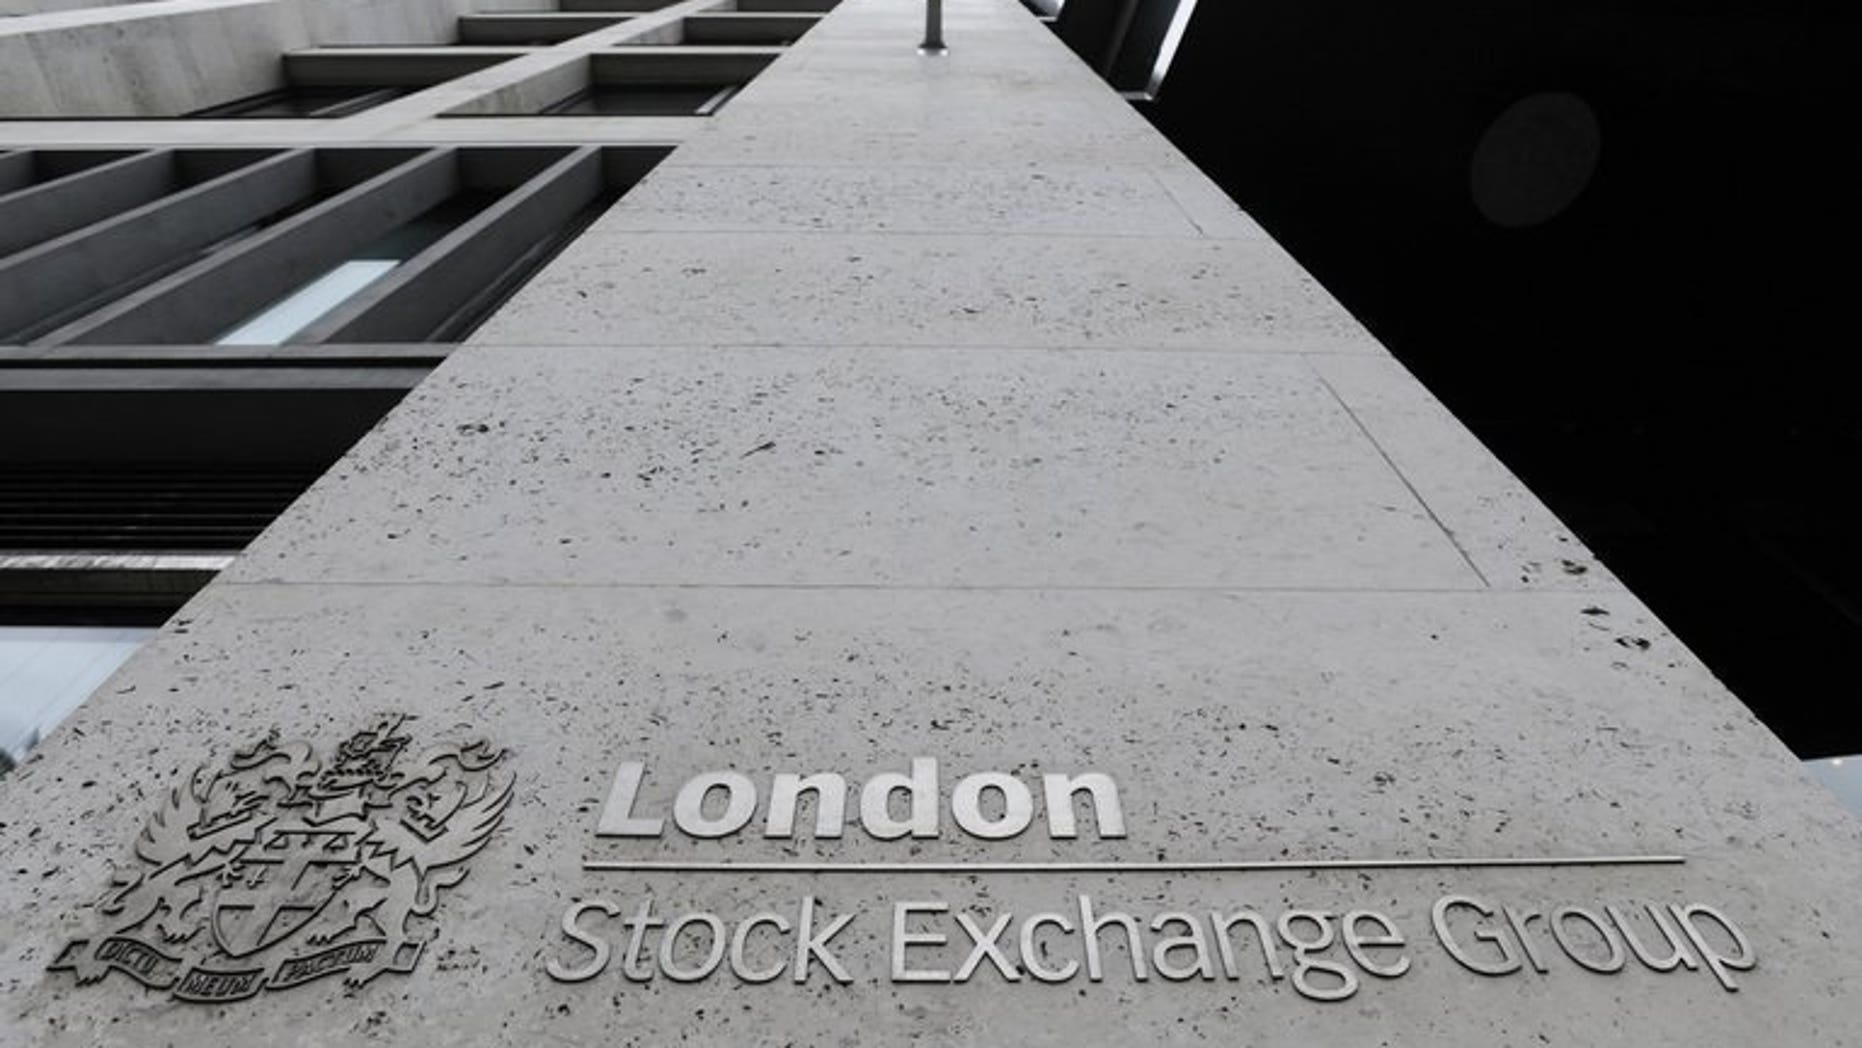 The London Stock Exchange is pictured on September 22, 2011. London equities weakened in opening deals on Monday despite overnight gains in Asia, with the benchmark FTSE 100 index down 0.05 percent at 6,544.03 points.